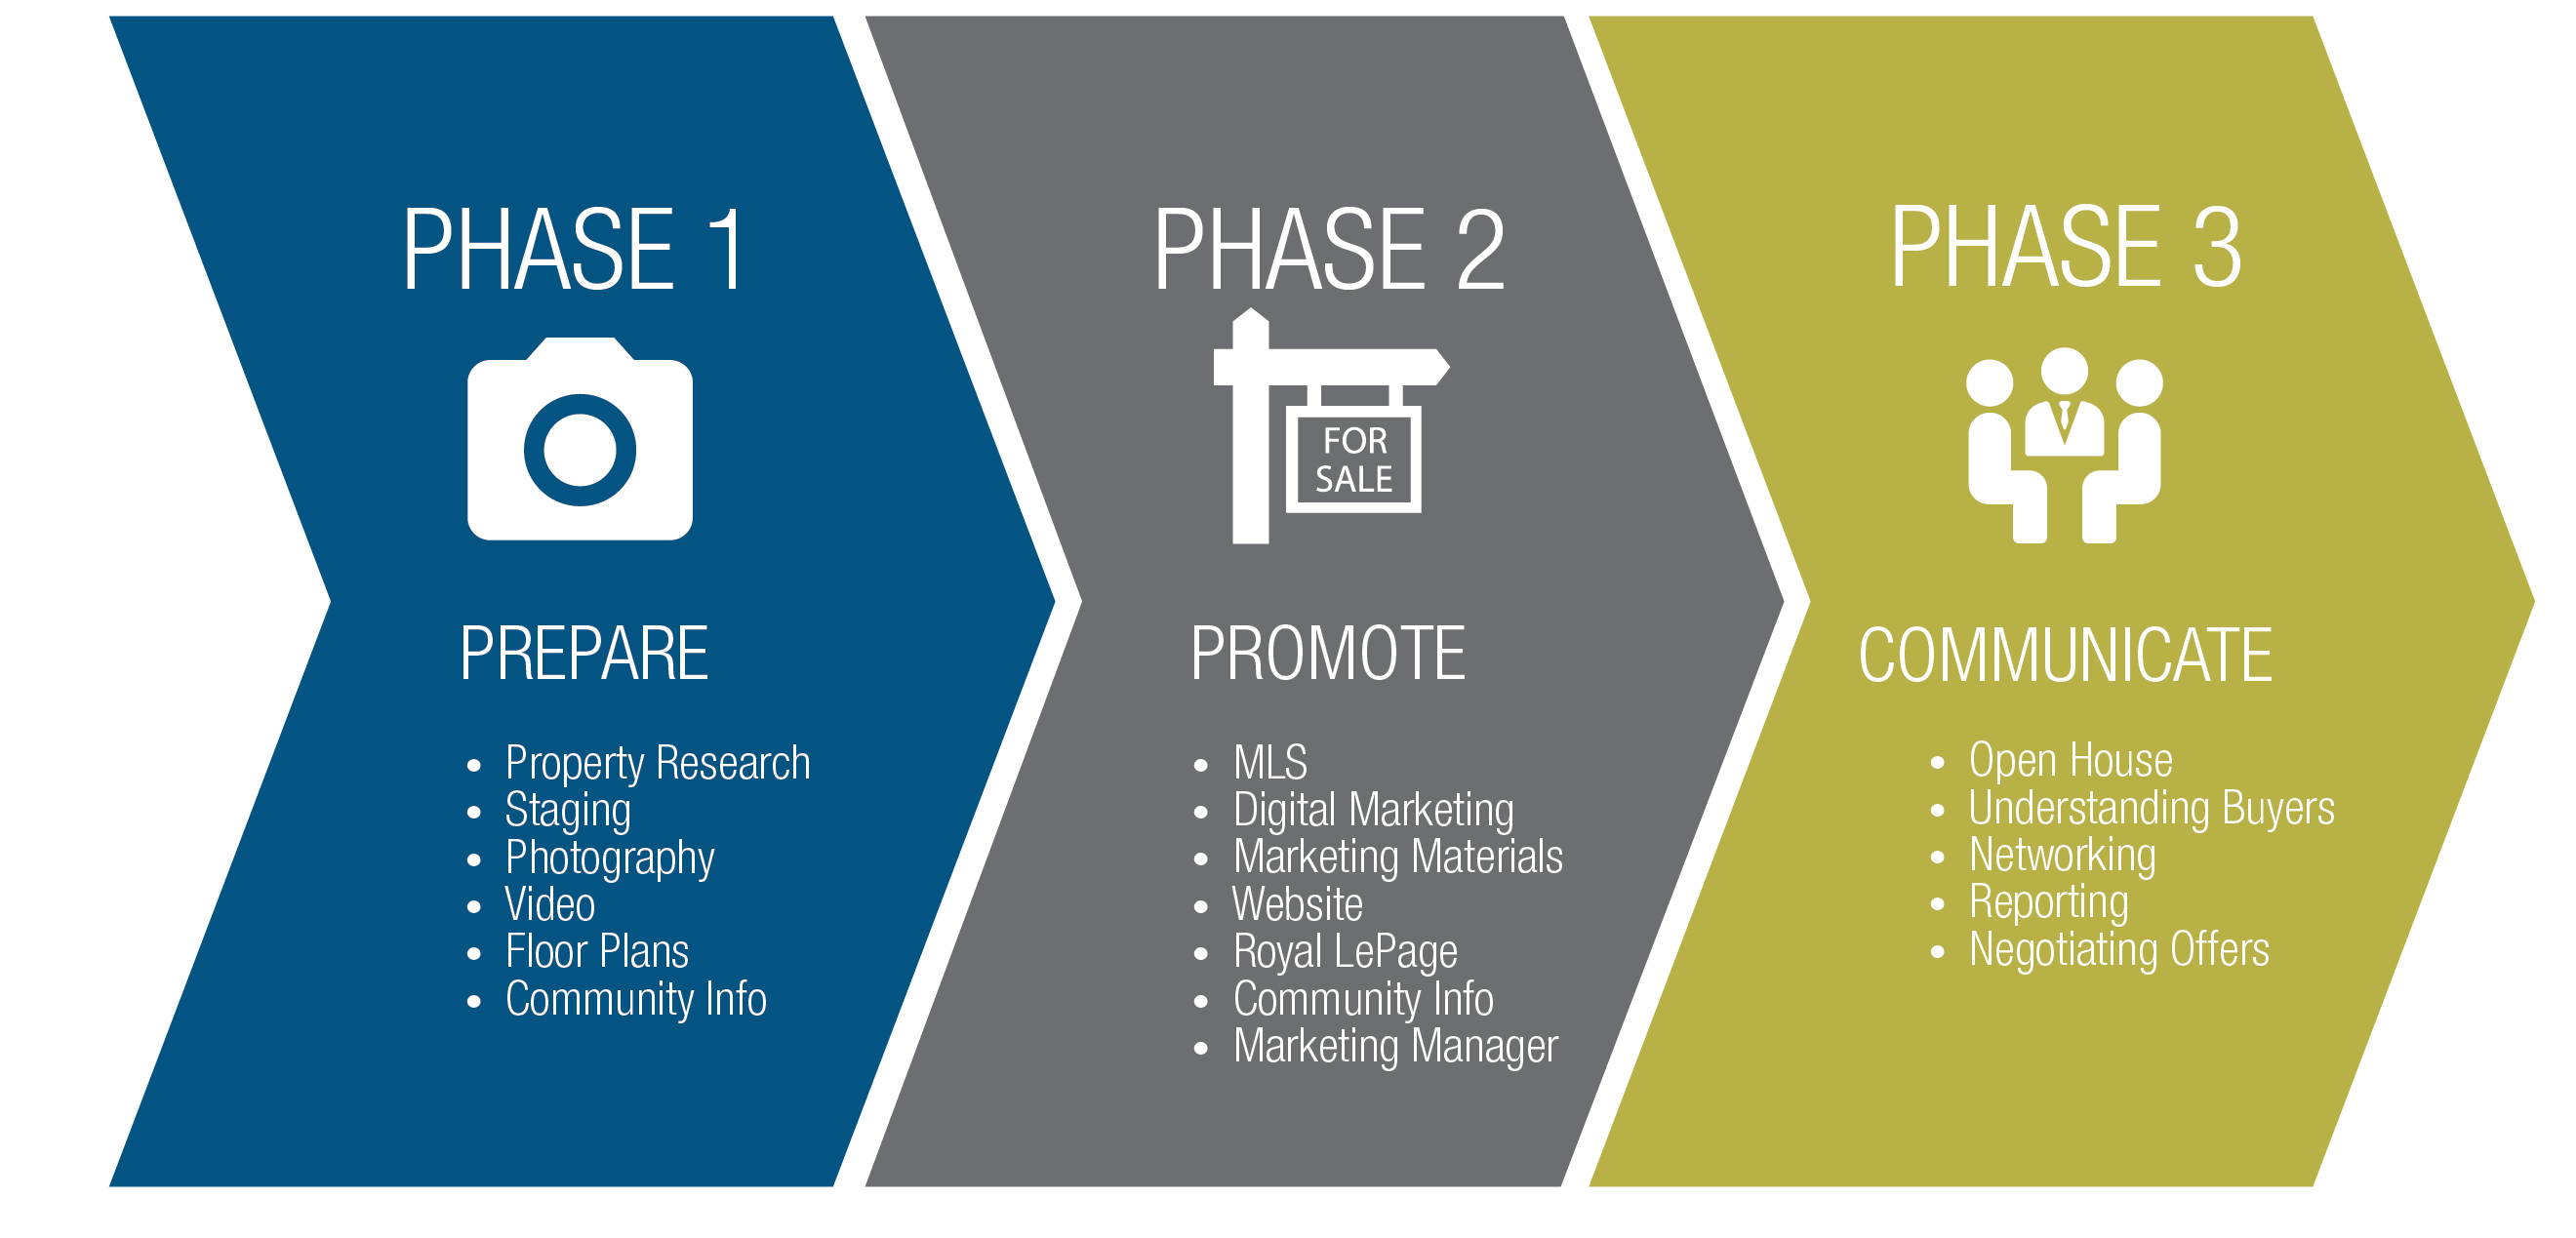 final phase marketing paper Final paper marketing encompasses the complex cycle of every stage of a product, from conception to the final sale and everything in between marketers are challenged with identifying the consumers needs/wants and managing the process to meet those needs every product a marketer develops.